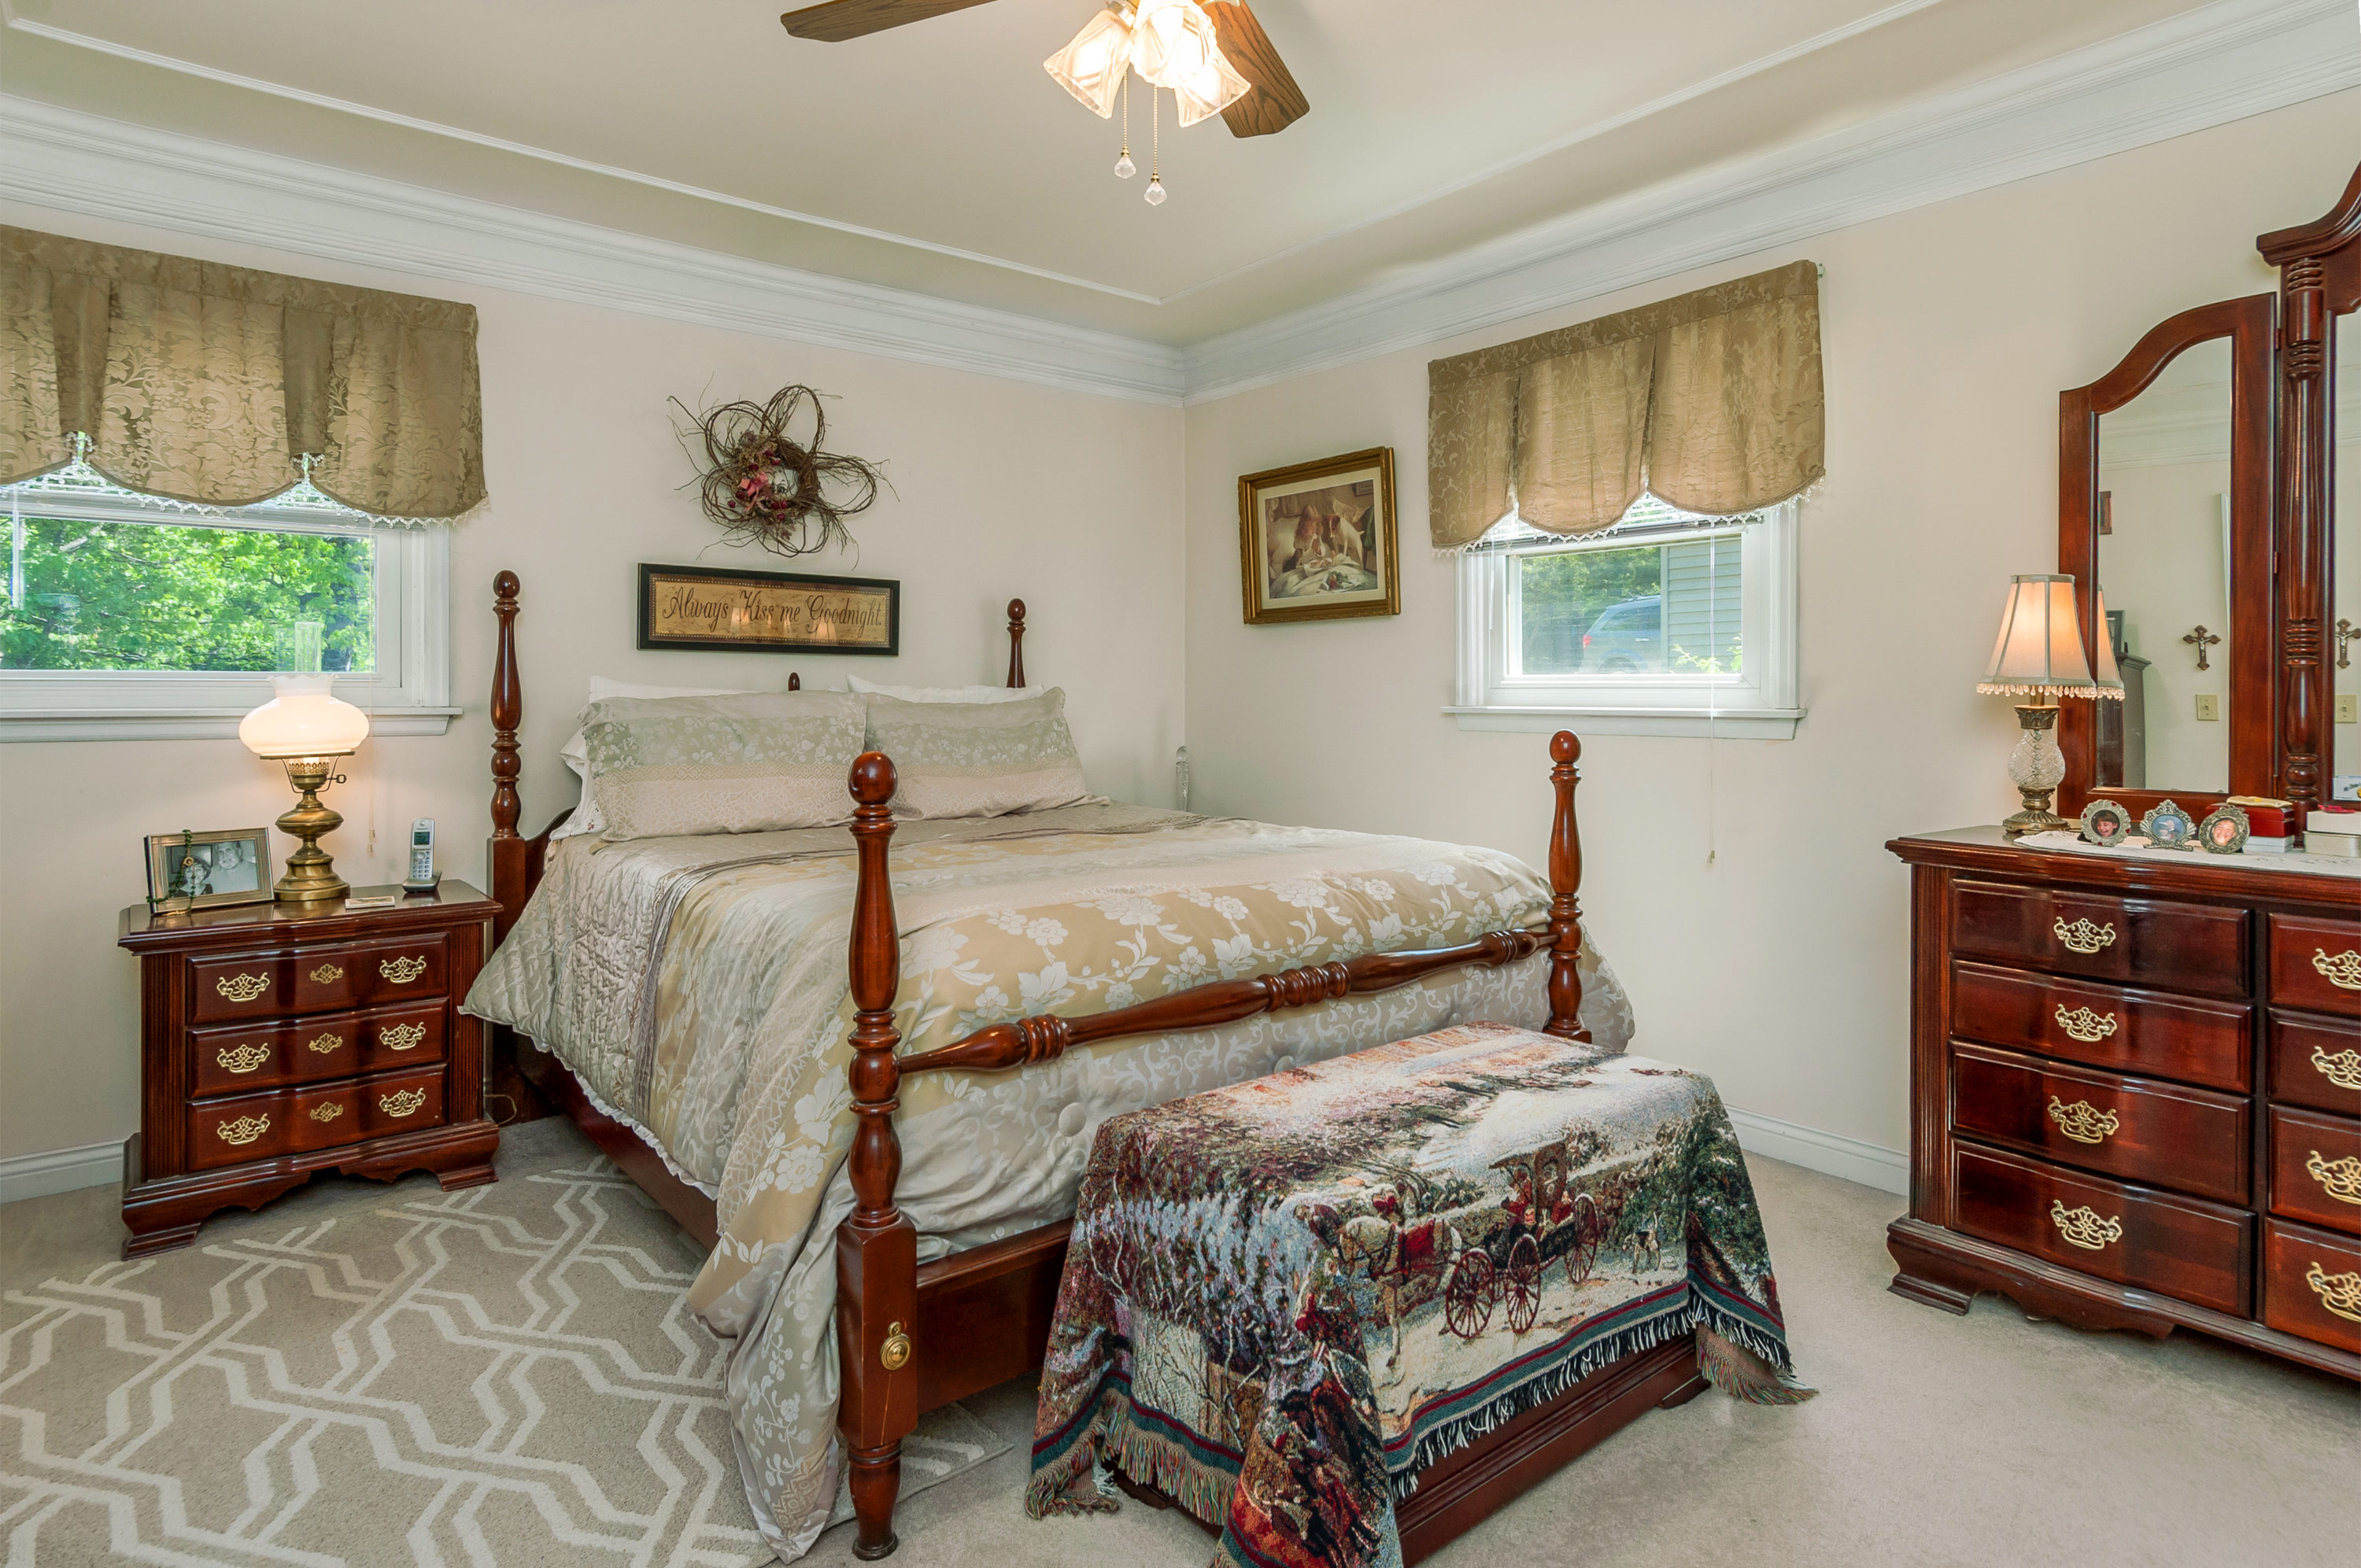 Guest bedroom at 369 Holiday Dr., Somonauk, Illinois